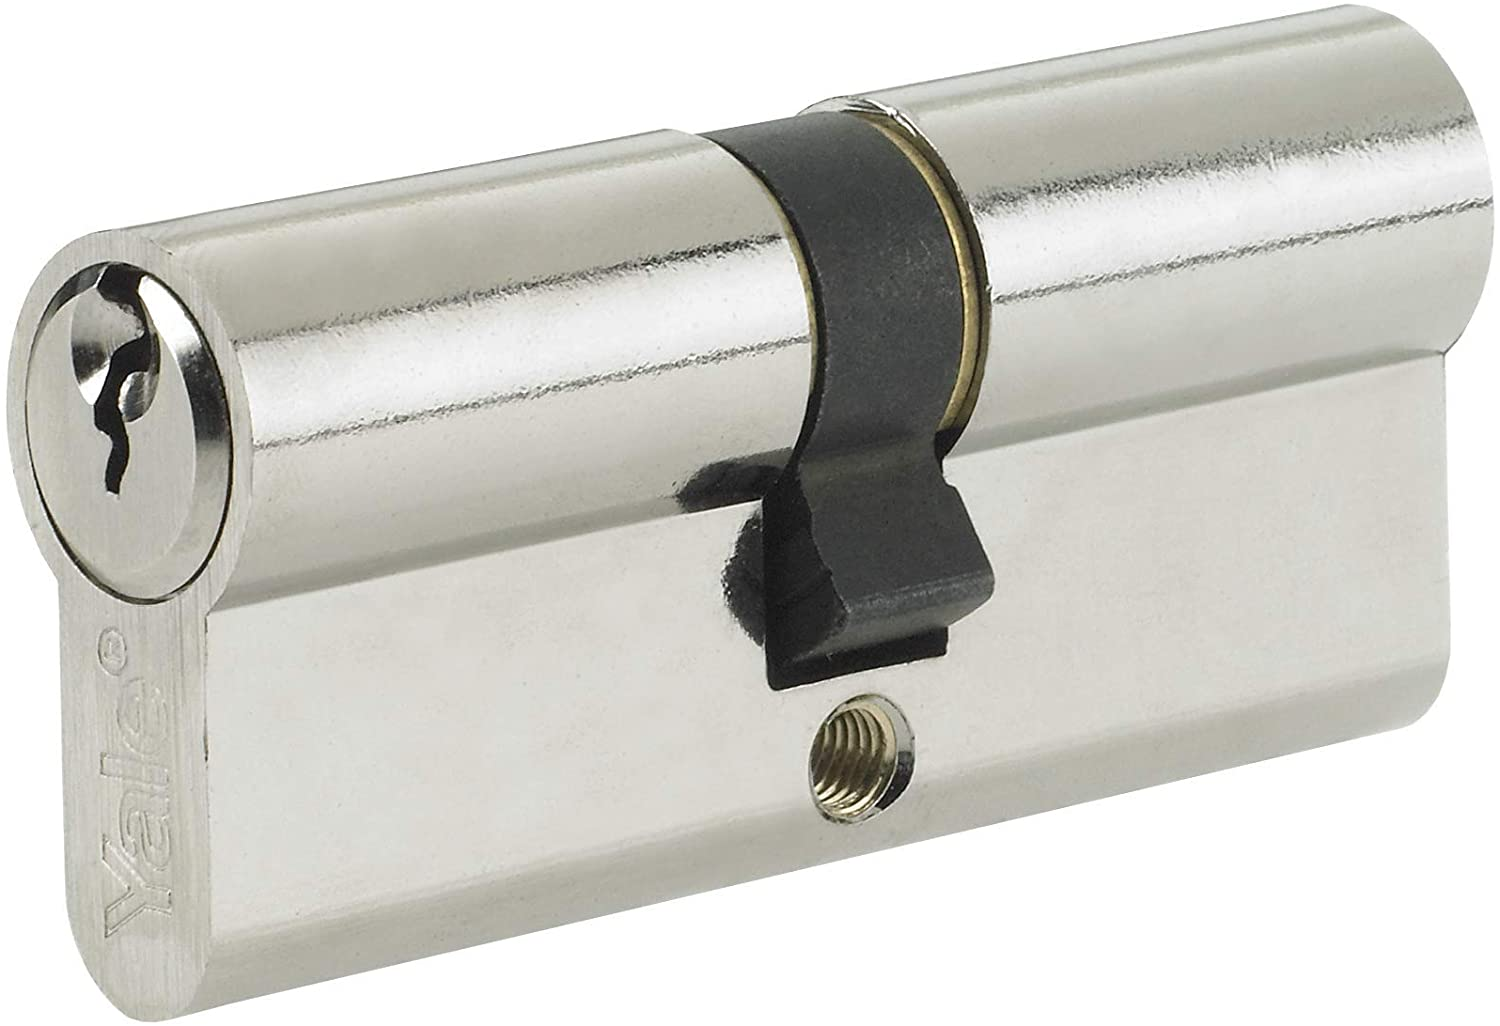 30//30 Nickel Yale Superior Euro Cylinder with 3 Keys Anti Snap//Bump//Pick//Drill//Pull High Security uPVC Composite Door Barrel Profile Lock